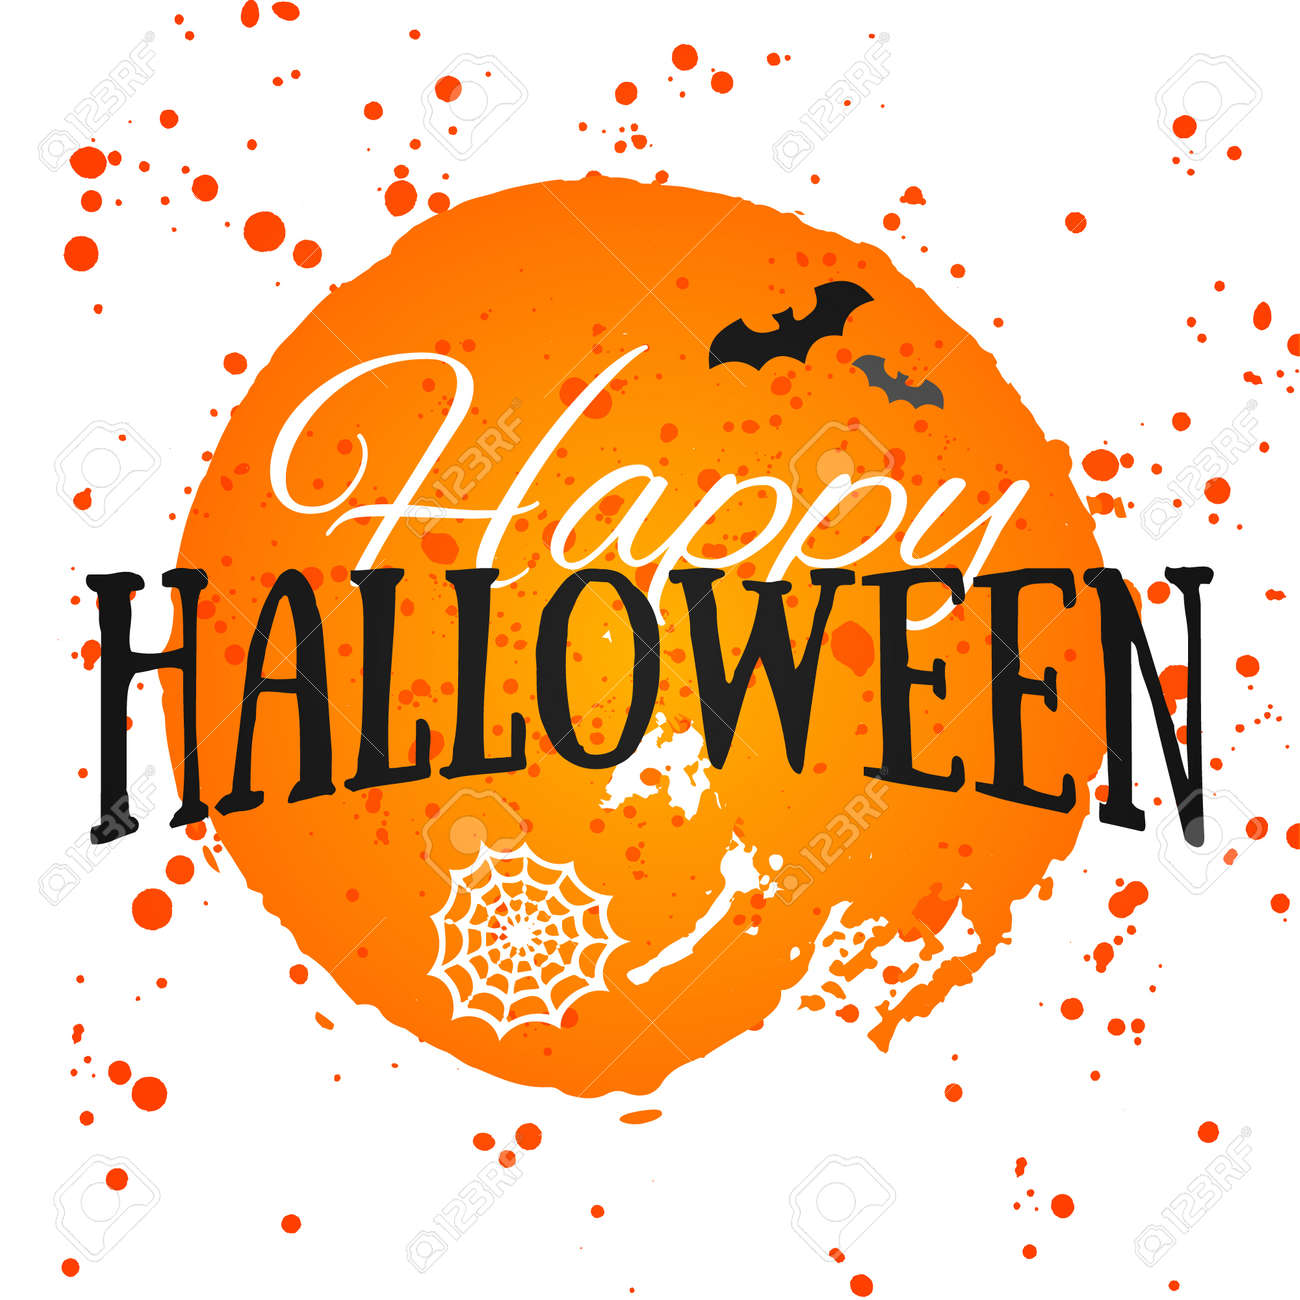 Happy Halloween Poster on bright watercolor background with stains and drops. Vector Illustration of Happy Halloween banner with halloween elements. Bats, spiderweb. - 45117715